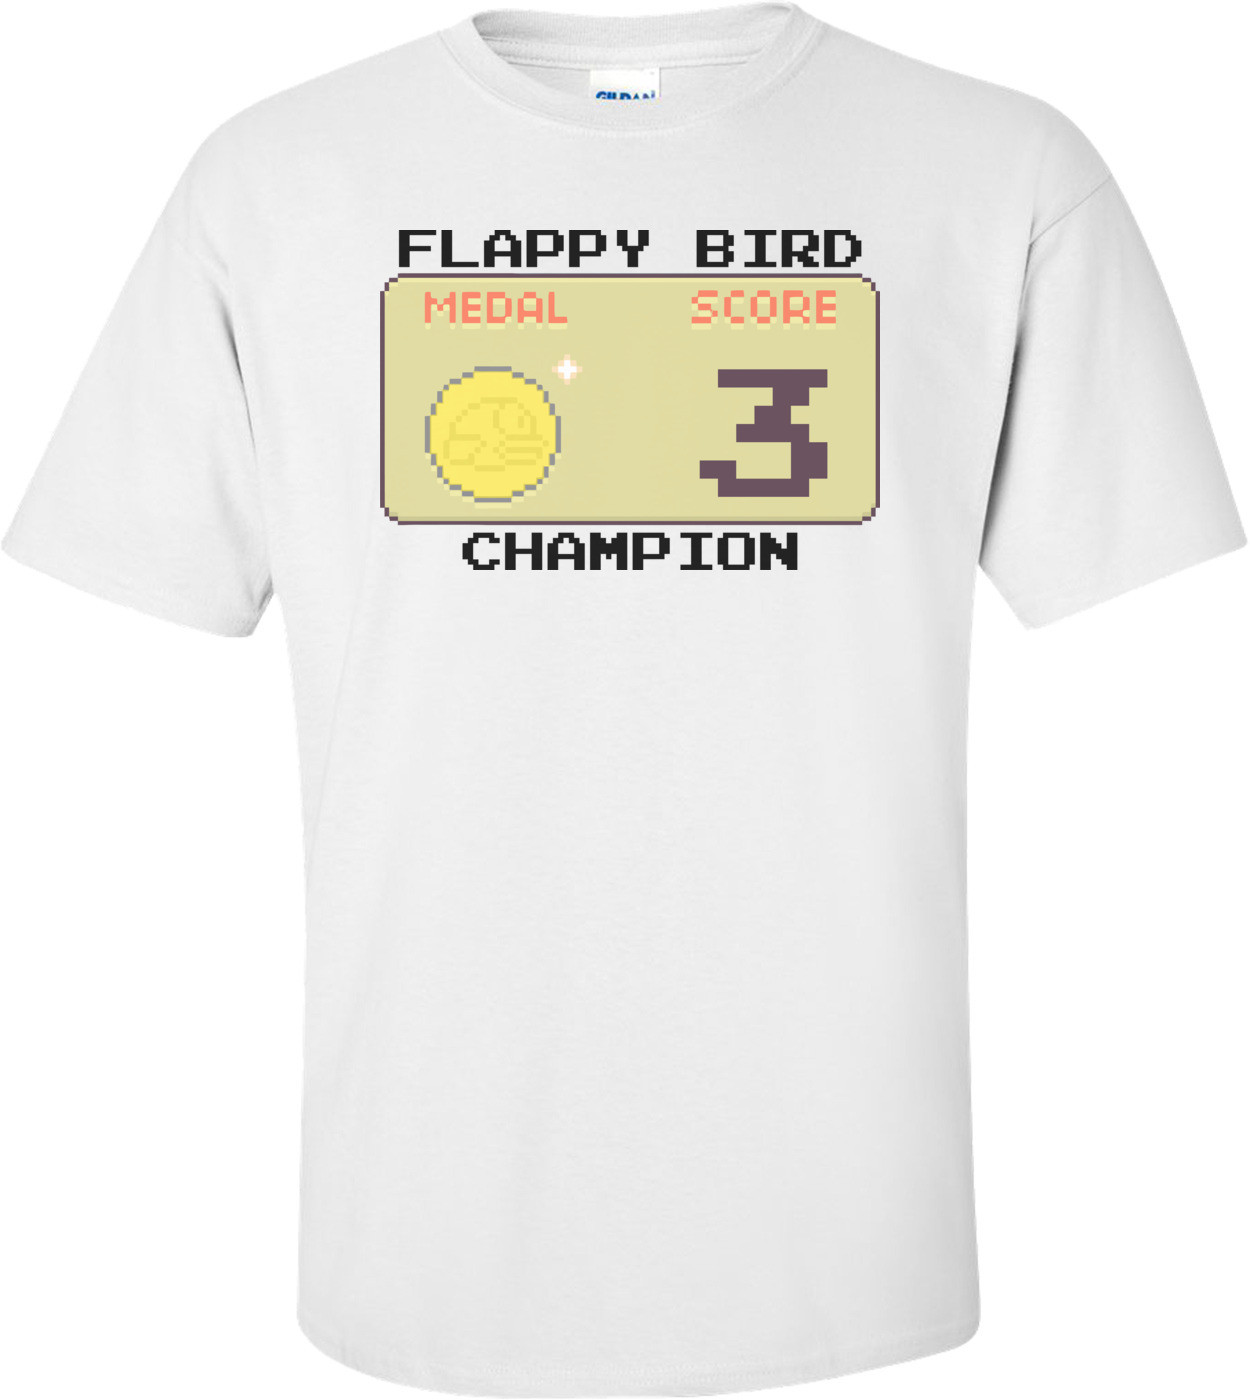 Flappy Bird Champion Shirt